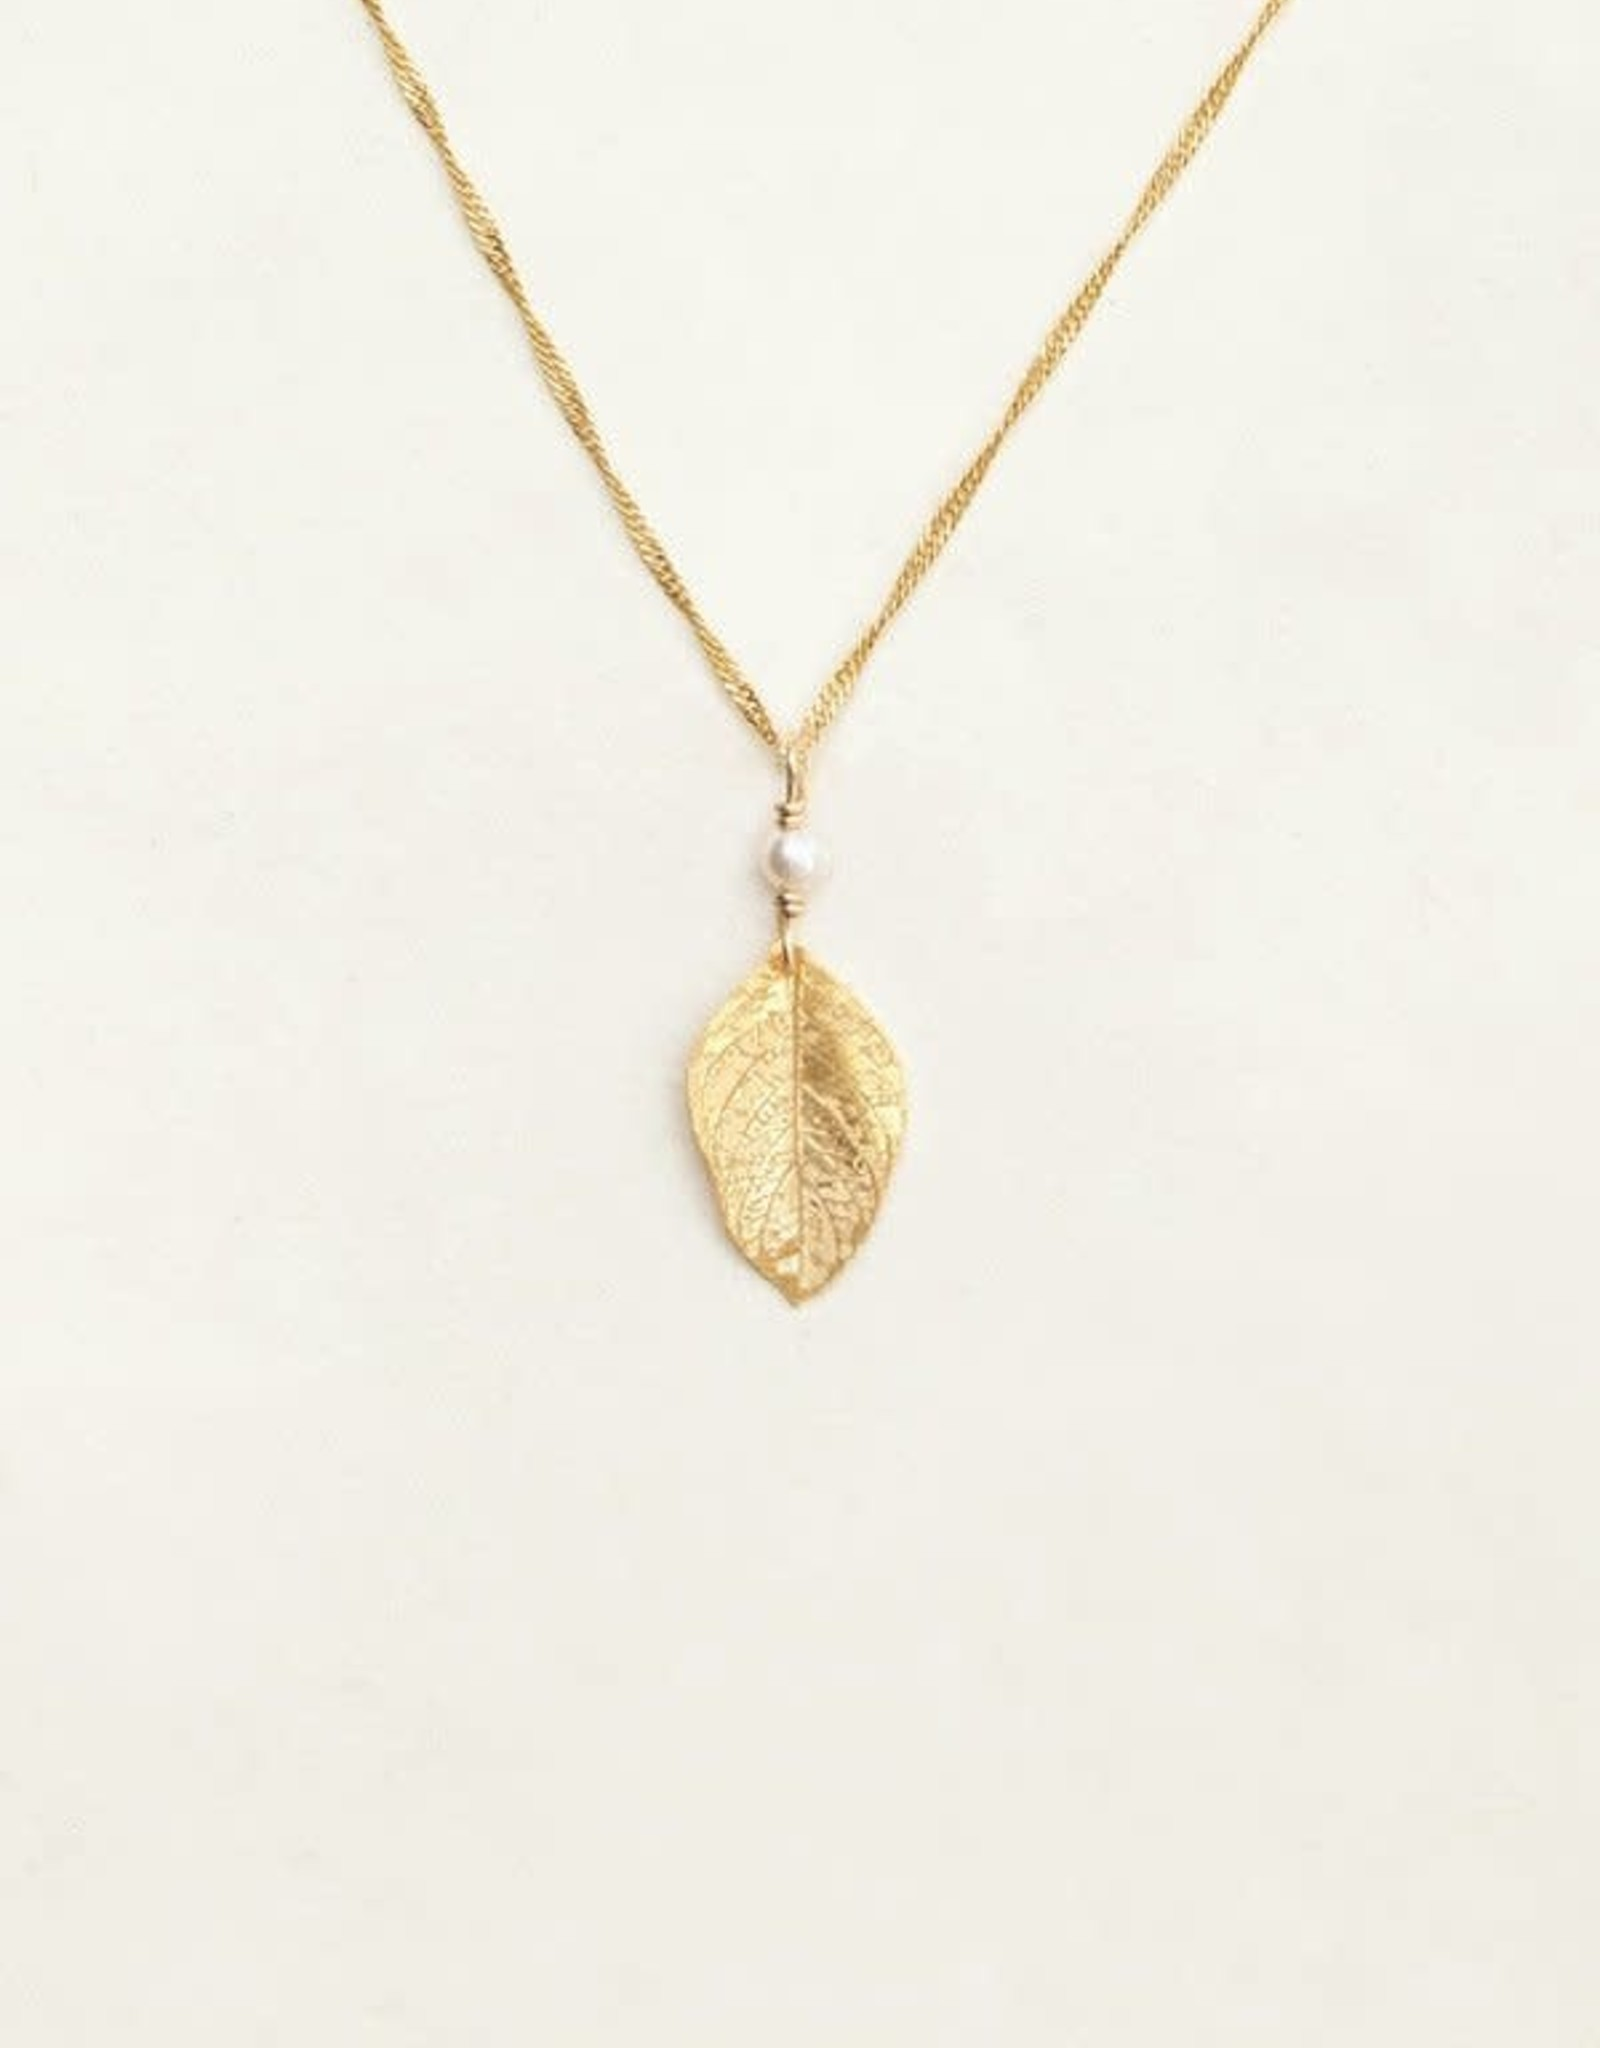 Holly Yashi Gold Healing Leaf Pendant Necklace